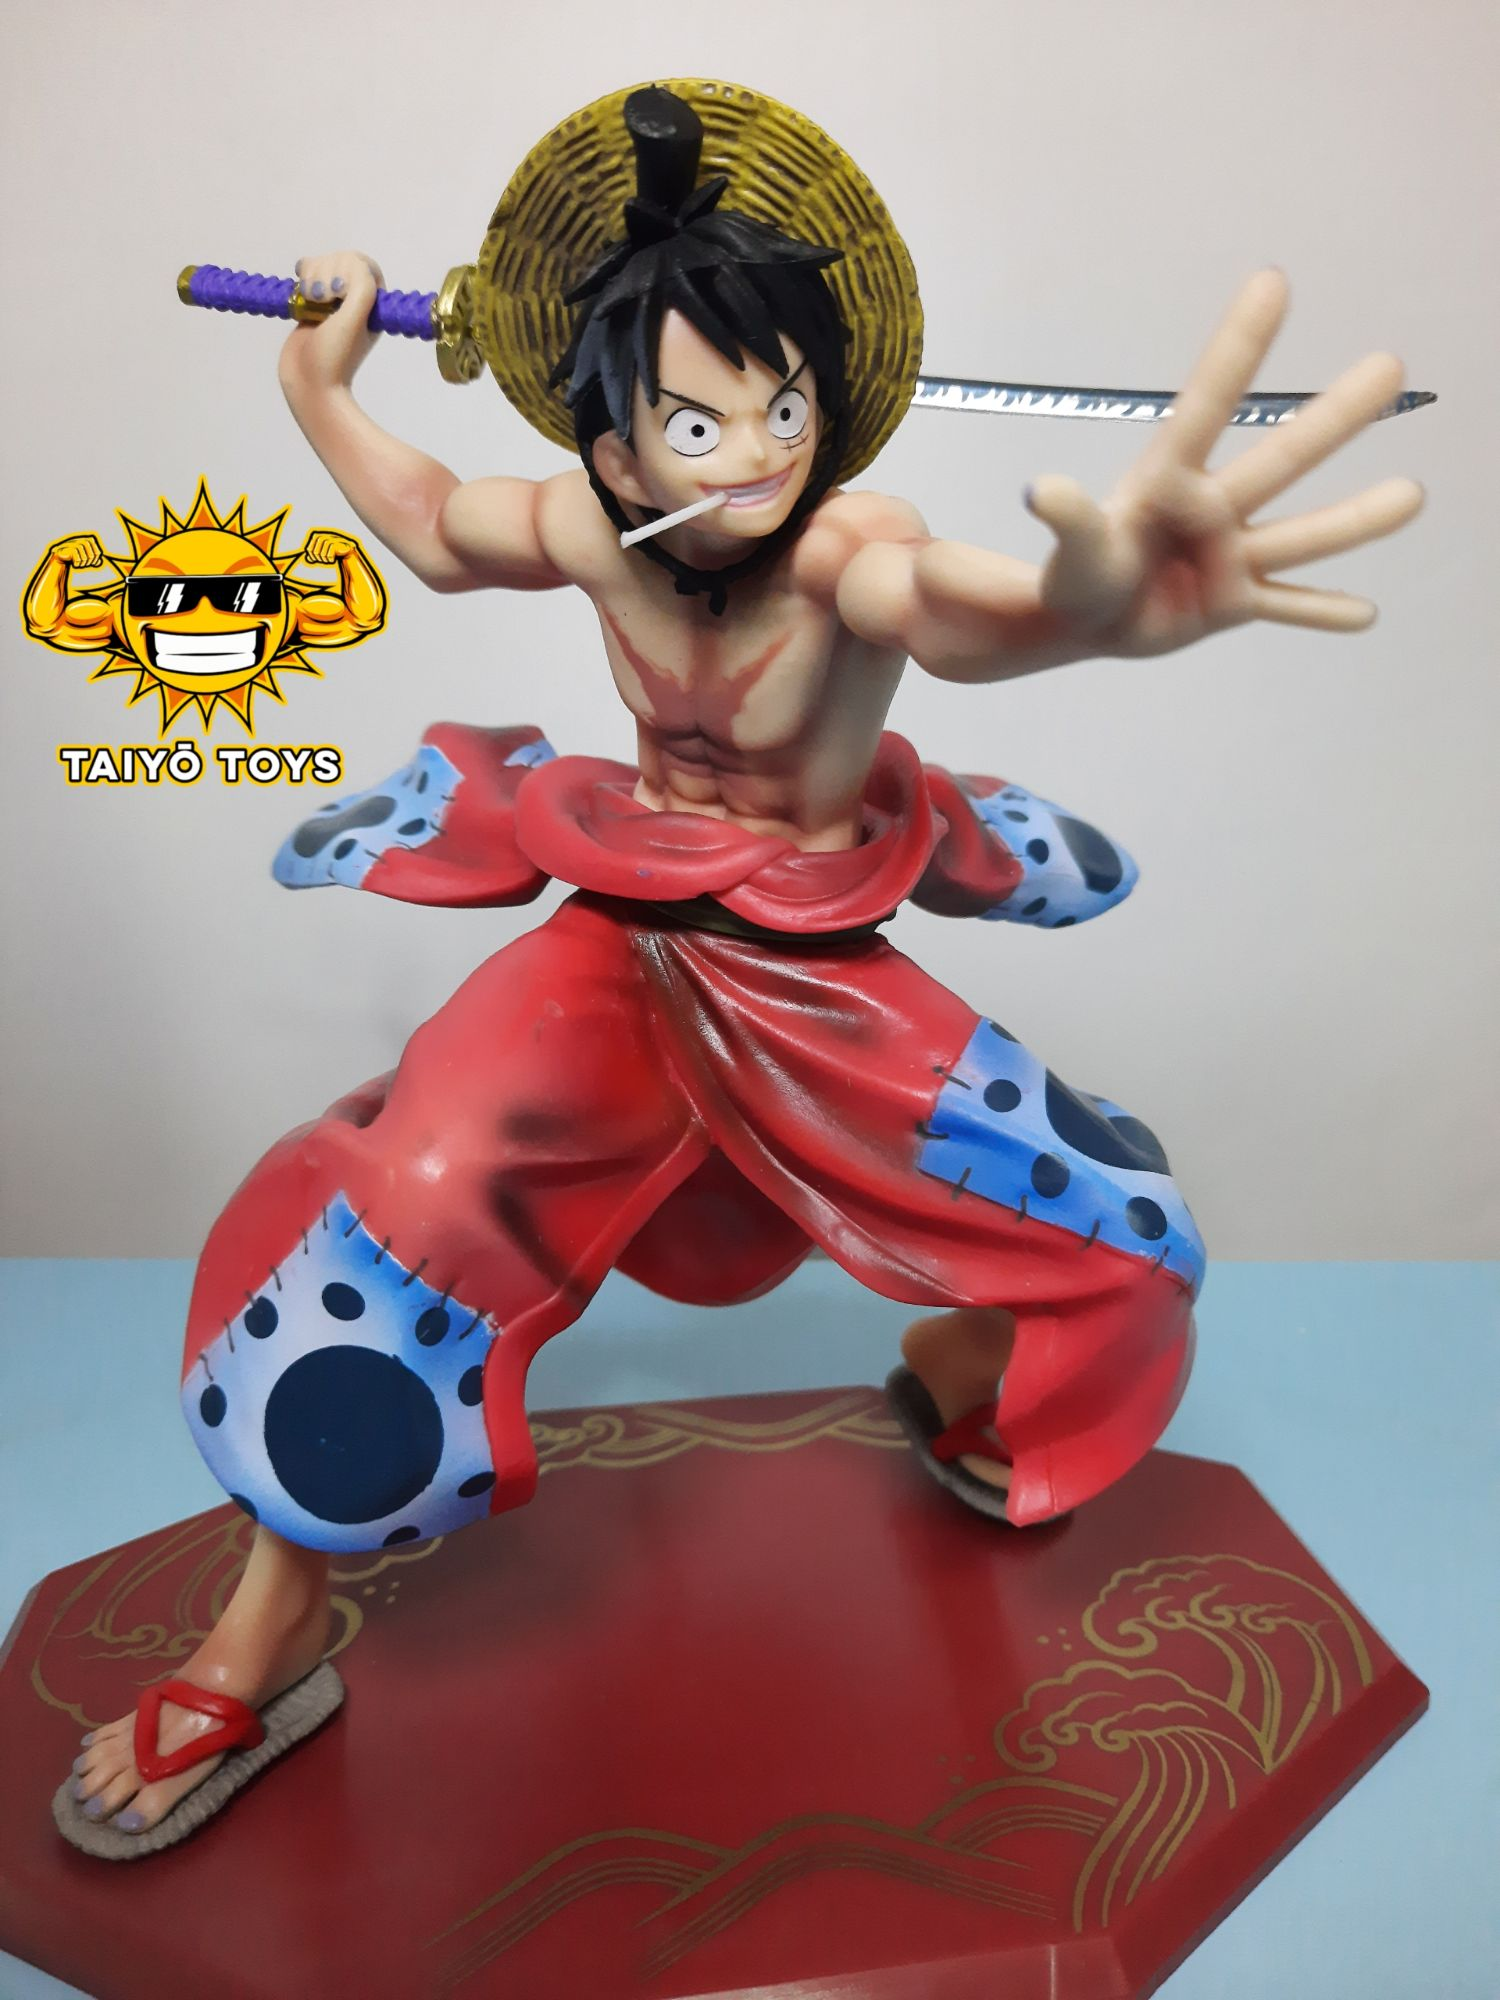 Unique wano clothing by independent designers from around the world. One Piece Anime Figure Monkey D Luffy Wano Arc Kimono Lazada Ph